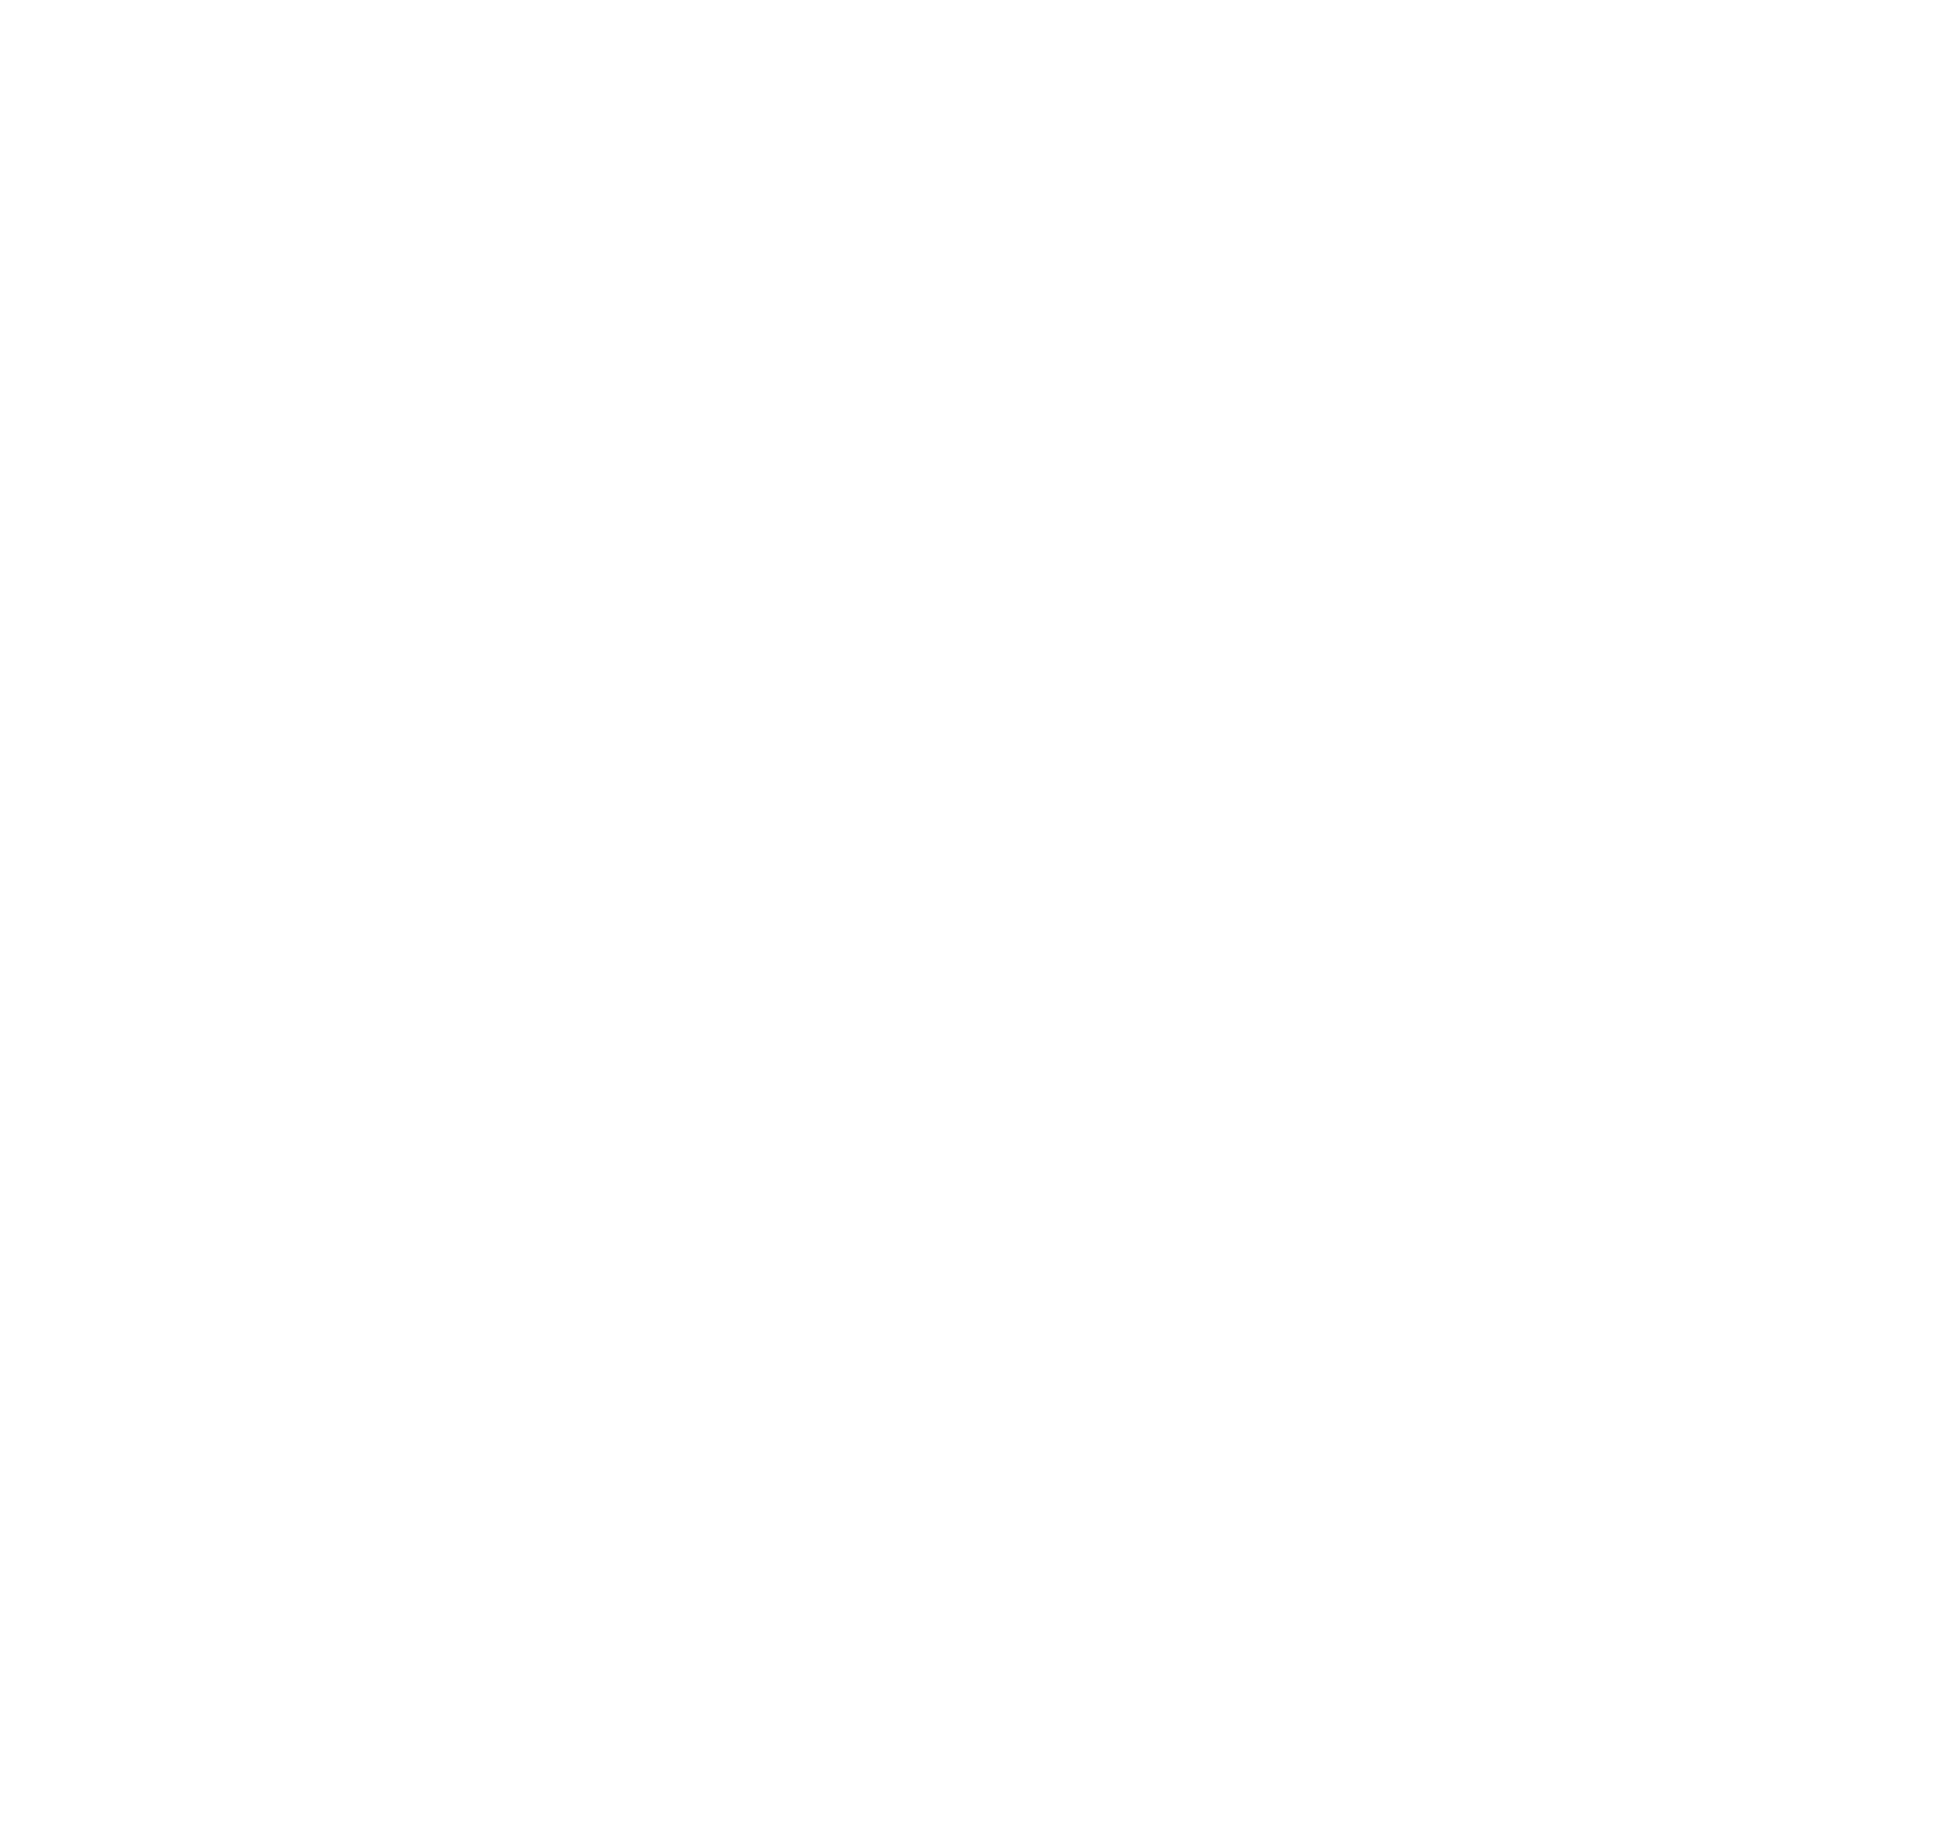 Combined and editable PDFs